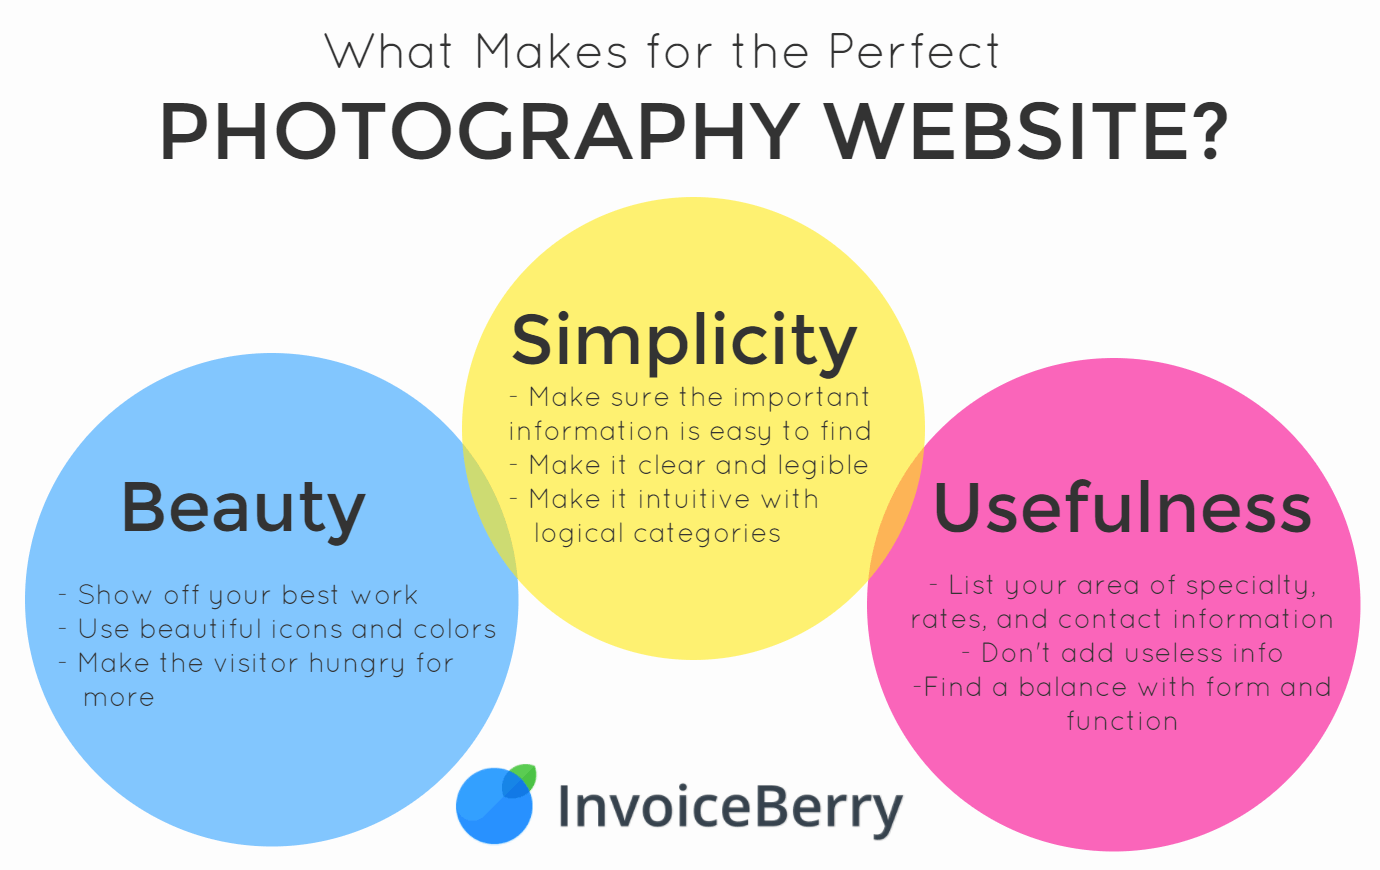 Check out these tips to create your perfect photography website